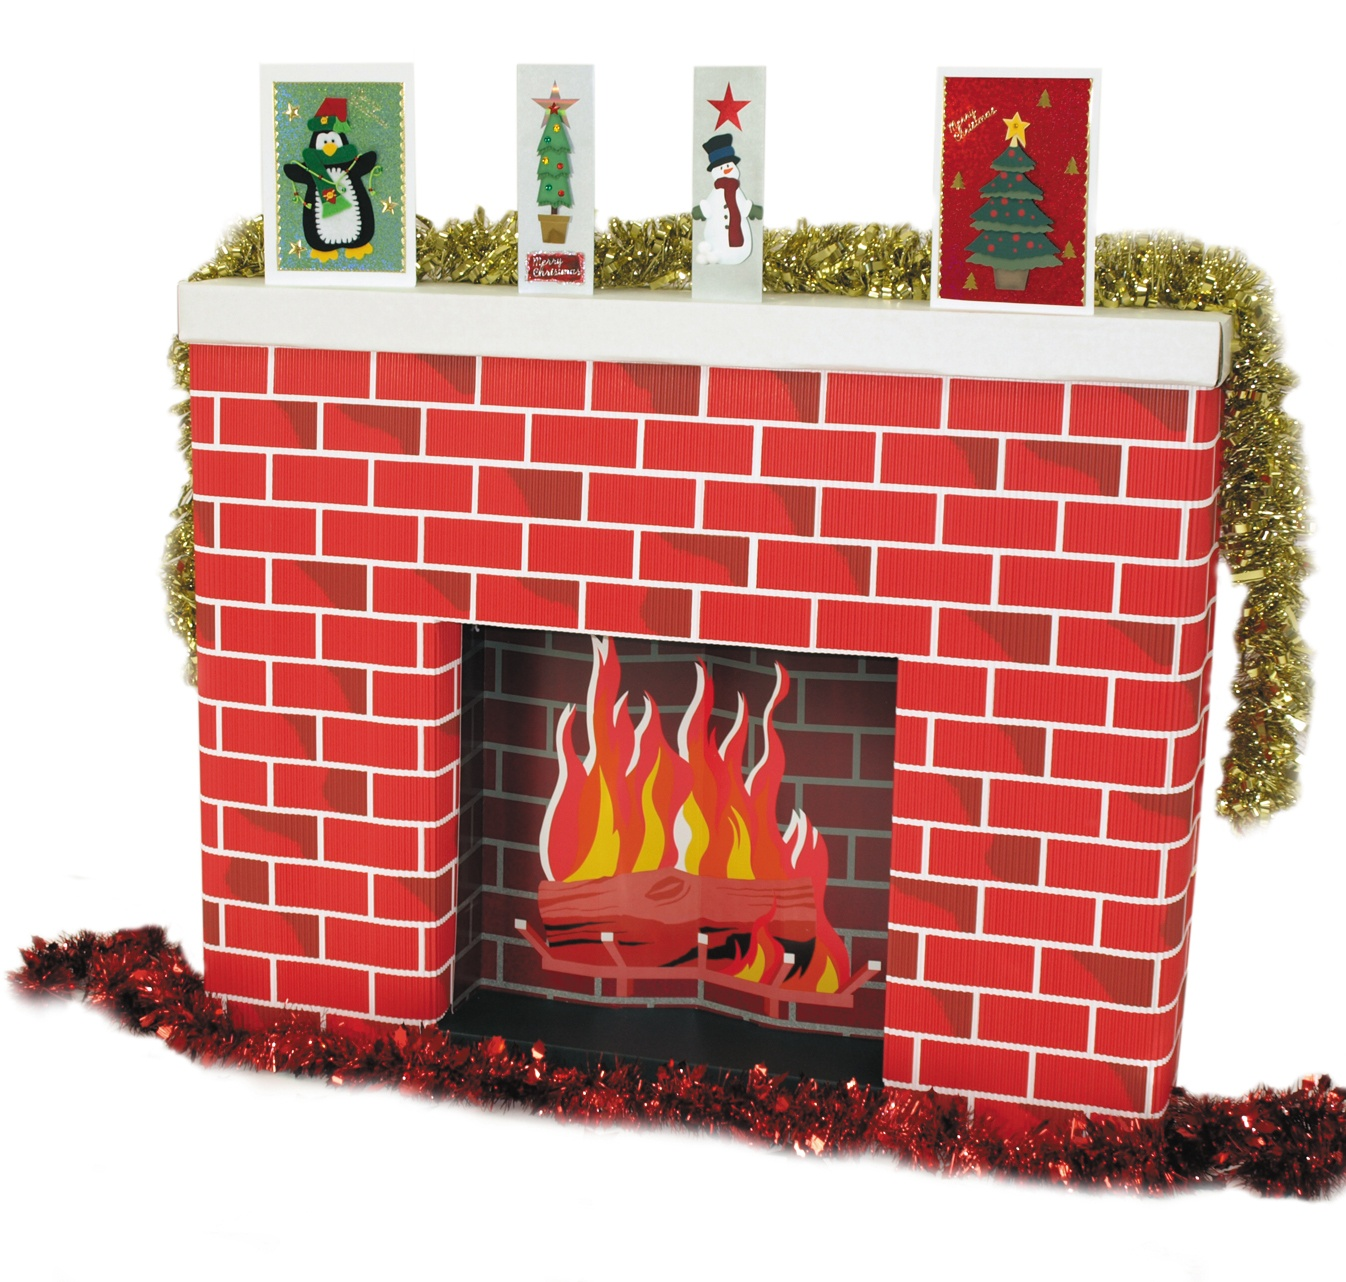 Life-size Christmas fireplace